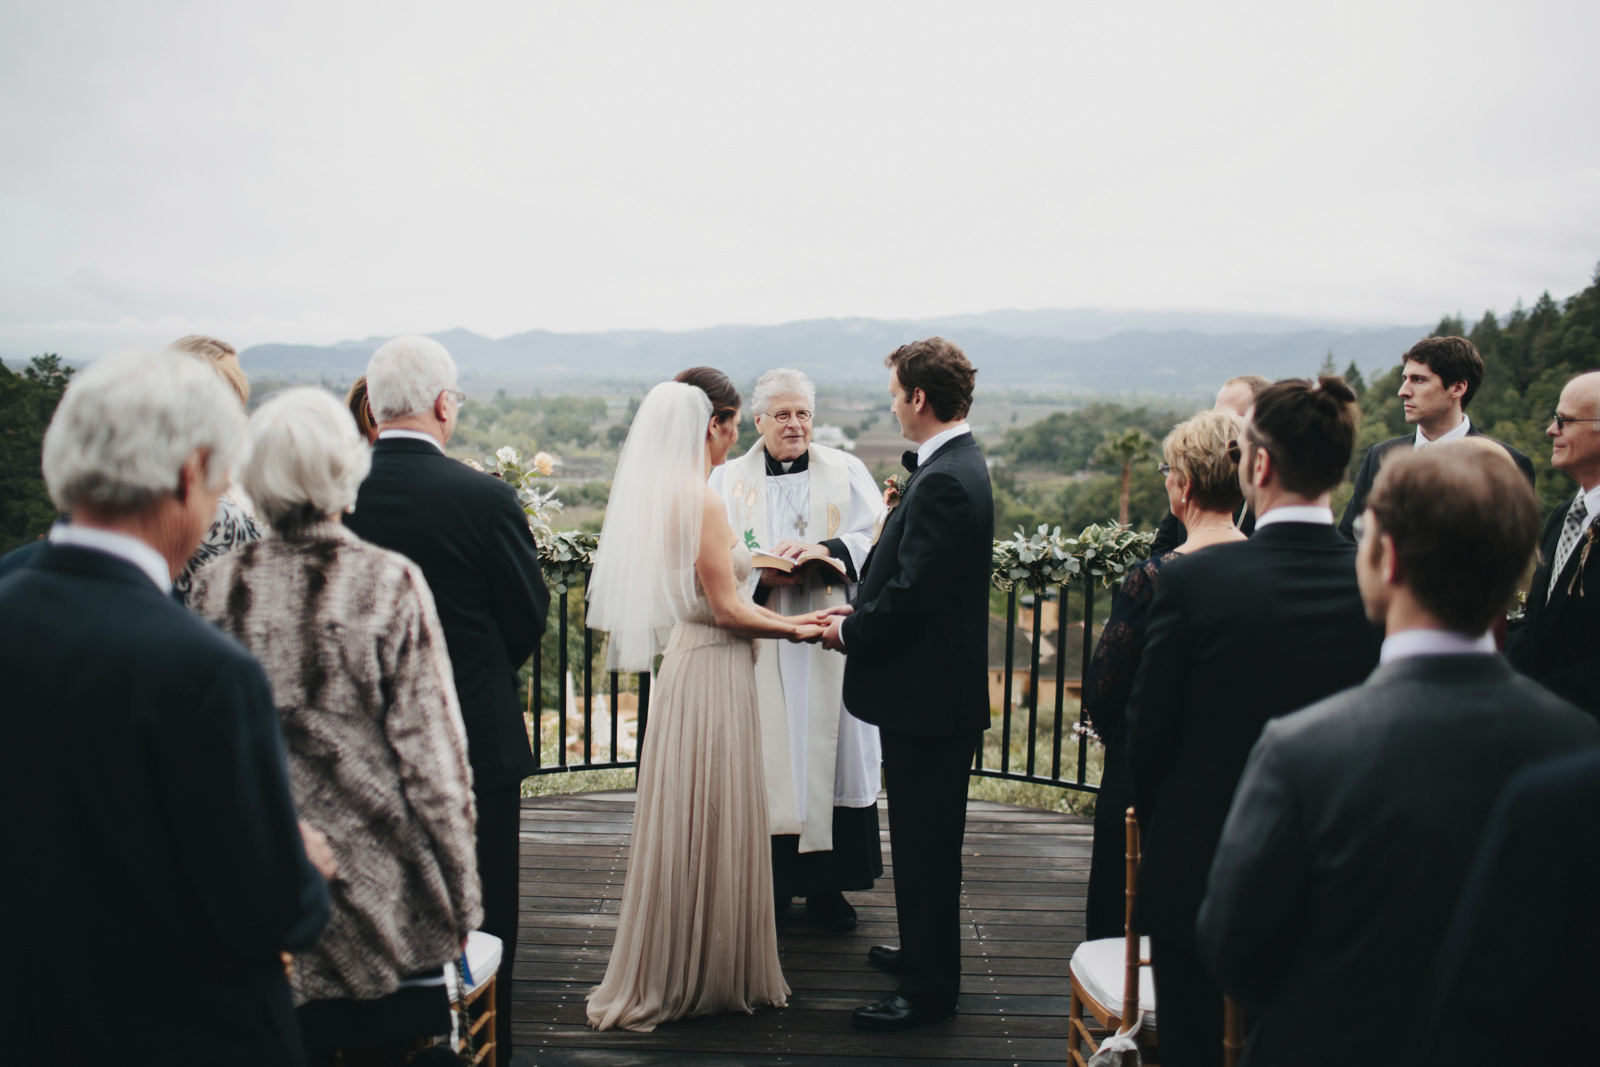 San Francisco - Napa Valley Wedding Photographer - For the Love of It-010.jpg